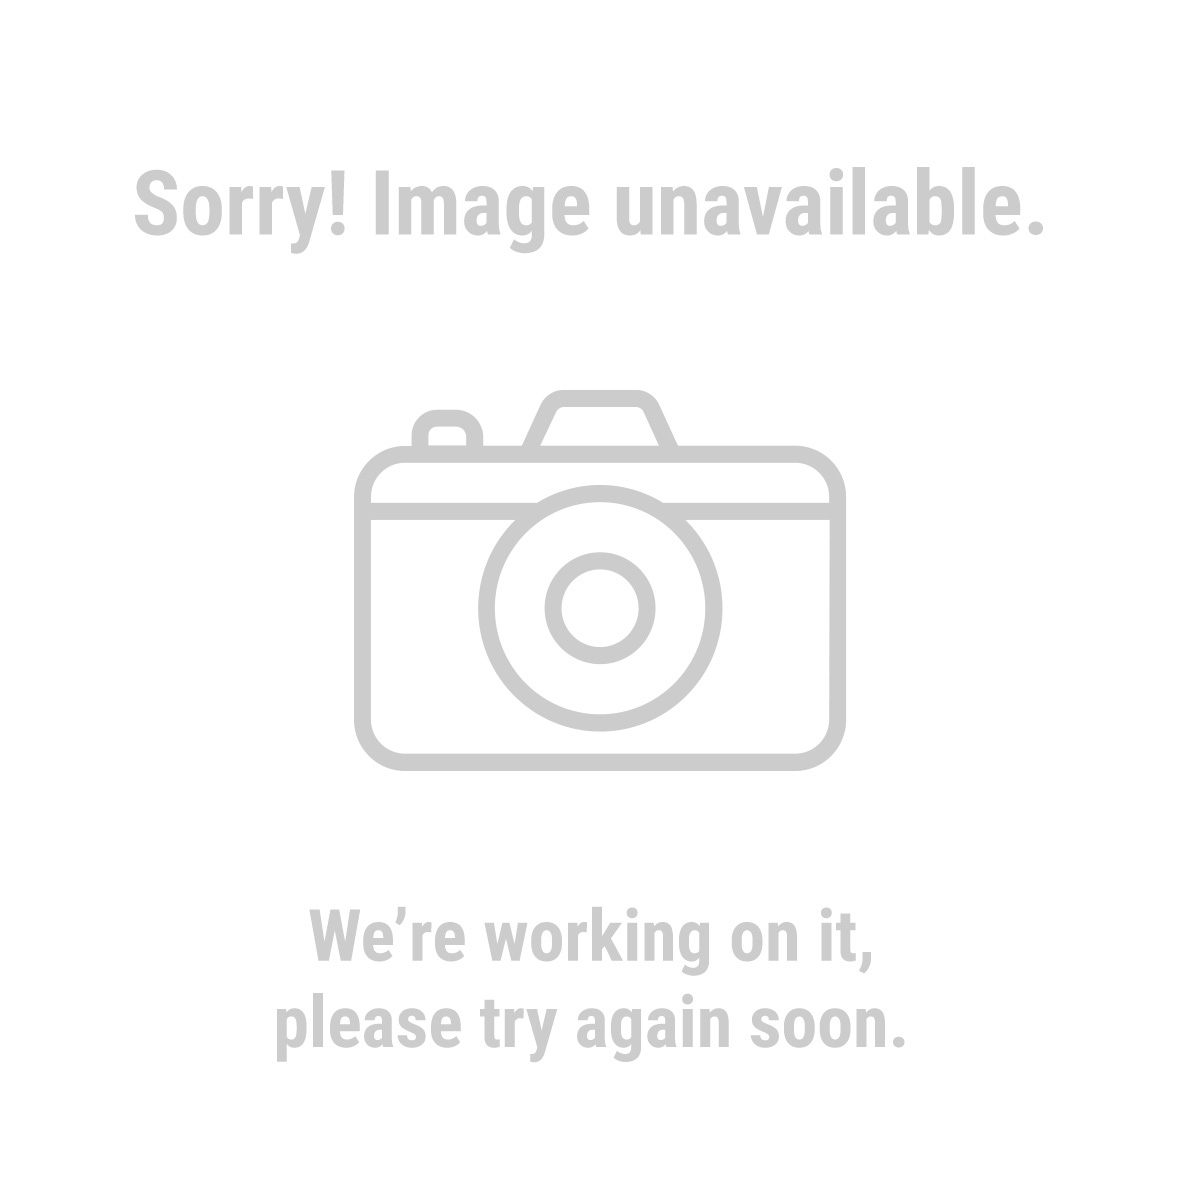 Haul-Master 46247 Right Submersible Trailer Light